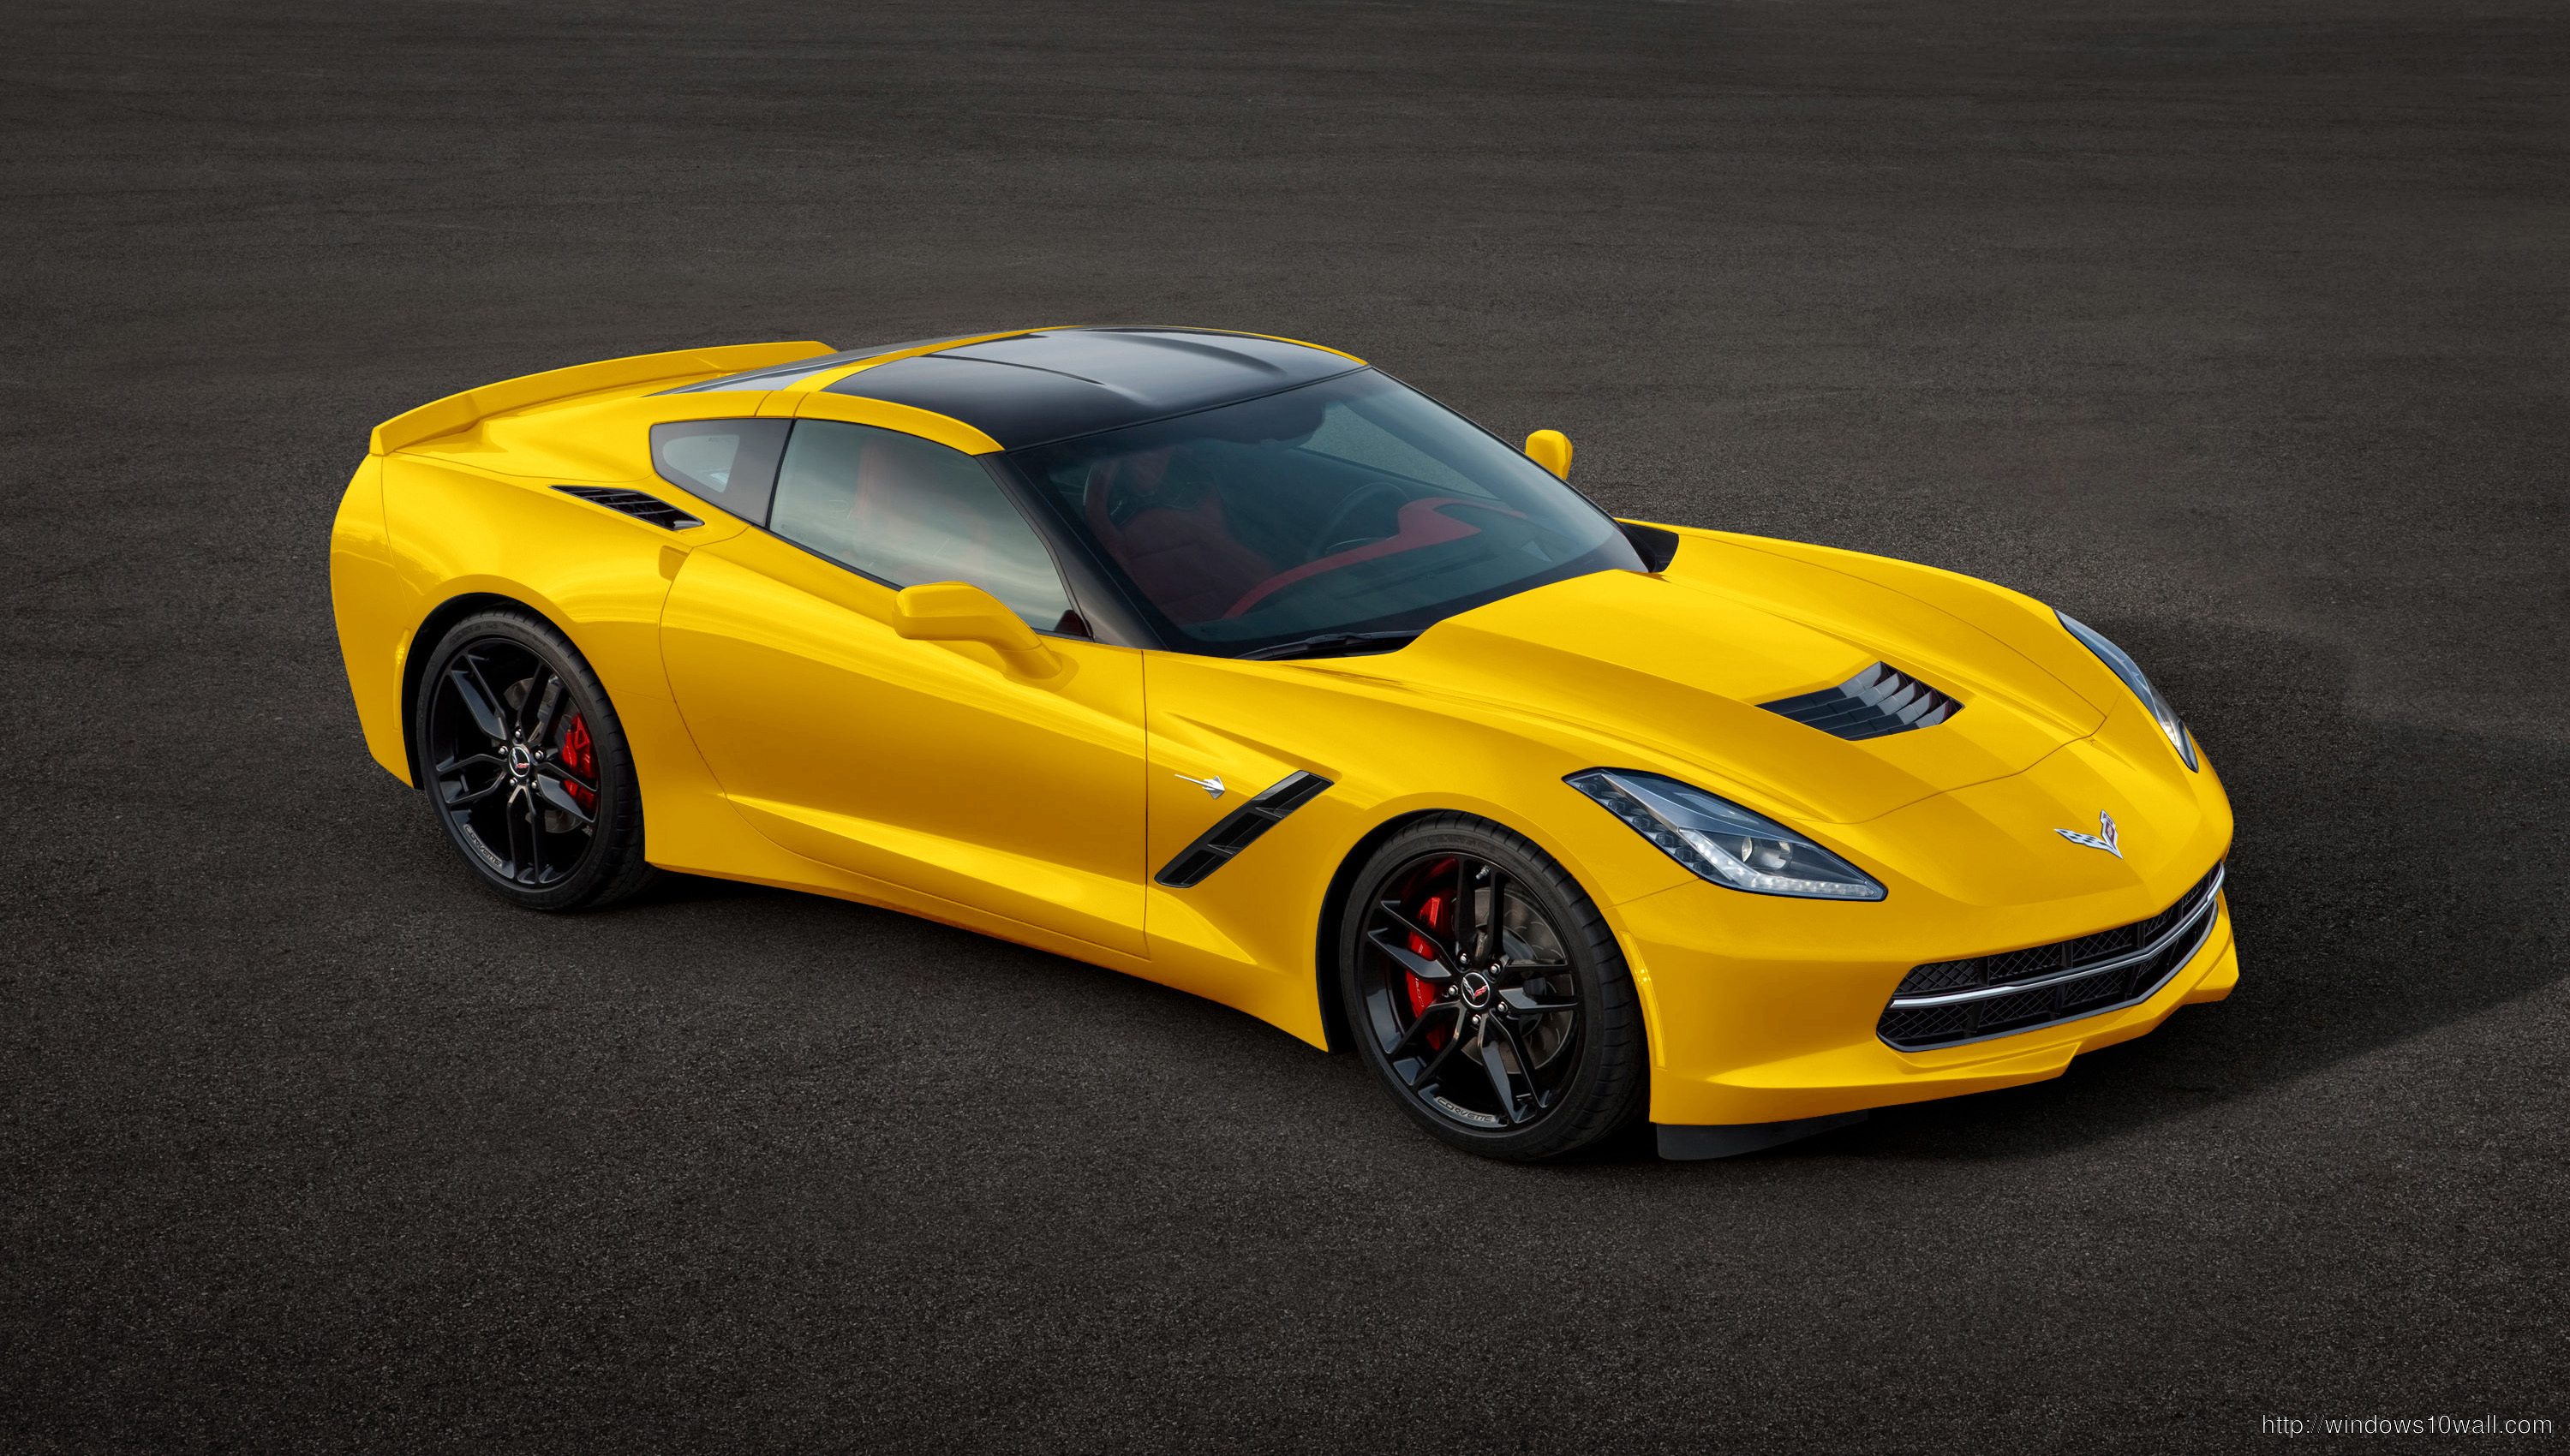 Yellow Chevrolet 2014 Corvette Stingray Wallpaper free